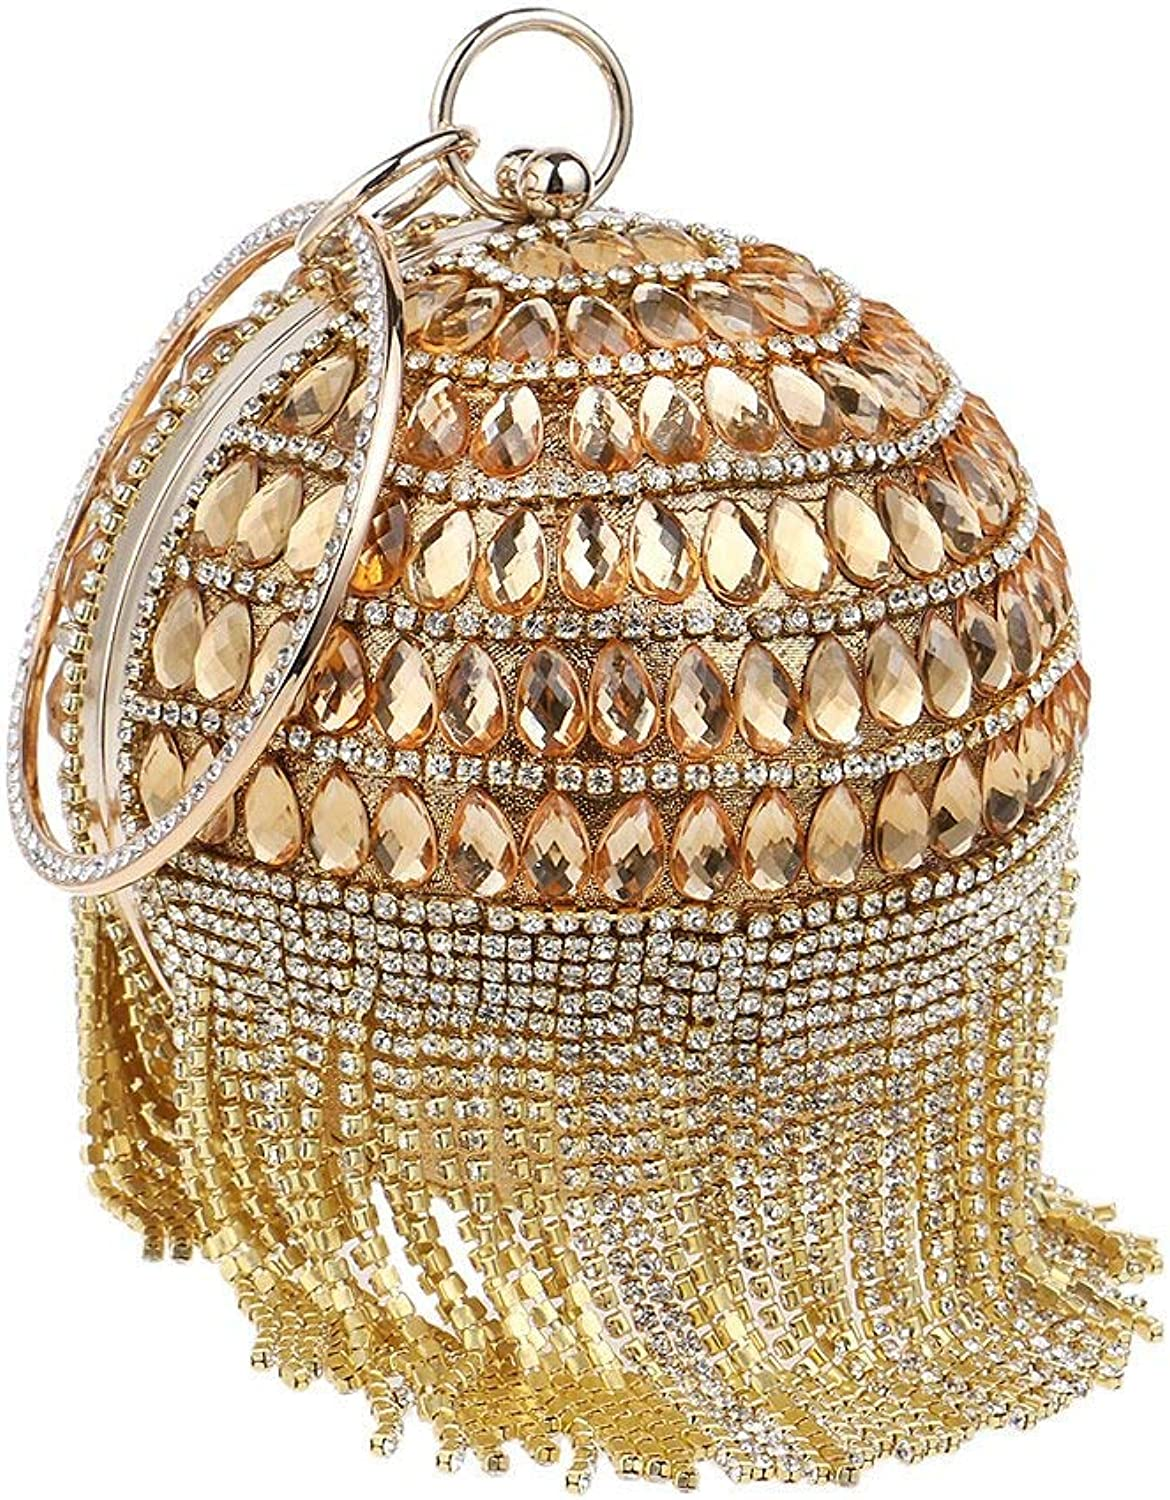 AKEY Clutch Bag Ladies Round Ball Clutch Bag Tassel Diamond Dress Evening Bag Metal Ring Wristlet Handbag Purse Evening Bag for Bridal (color   gold, Size   Diameter12.5cm)